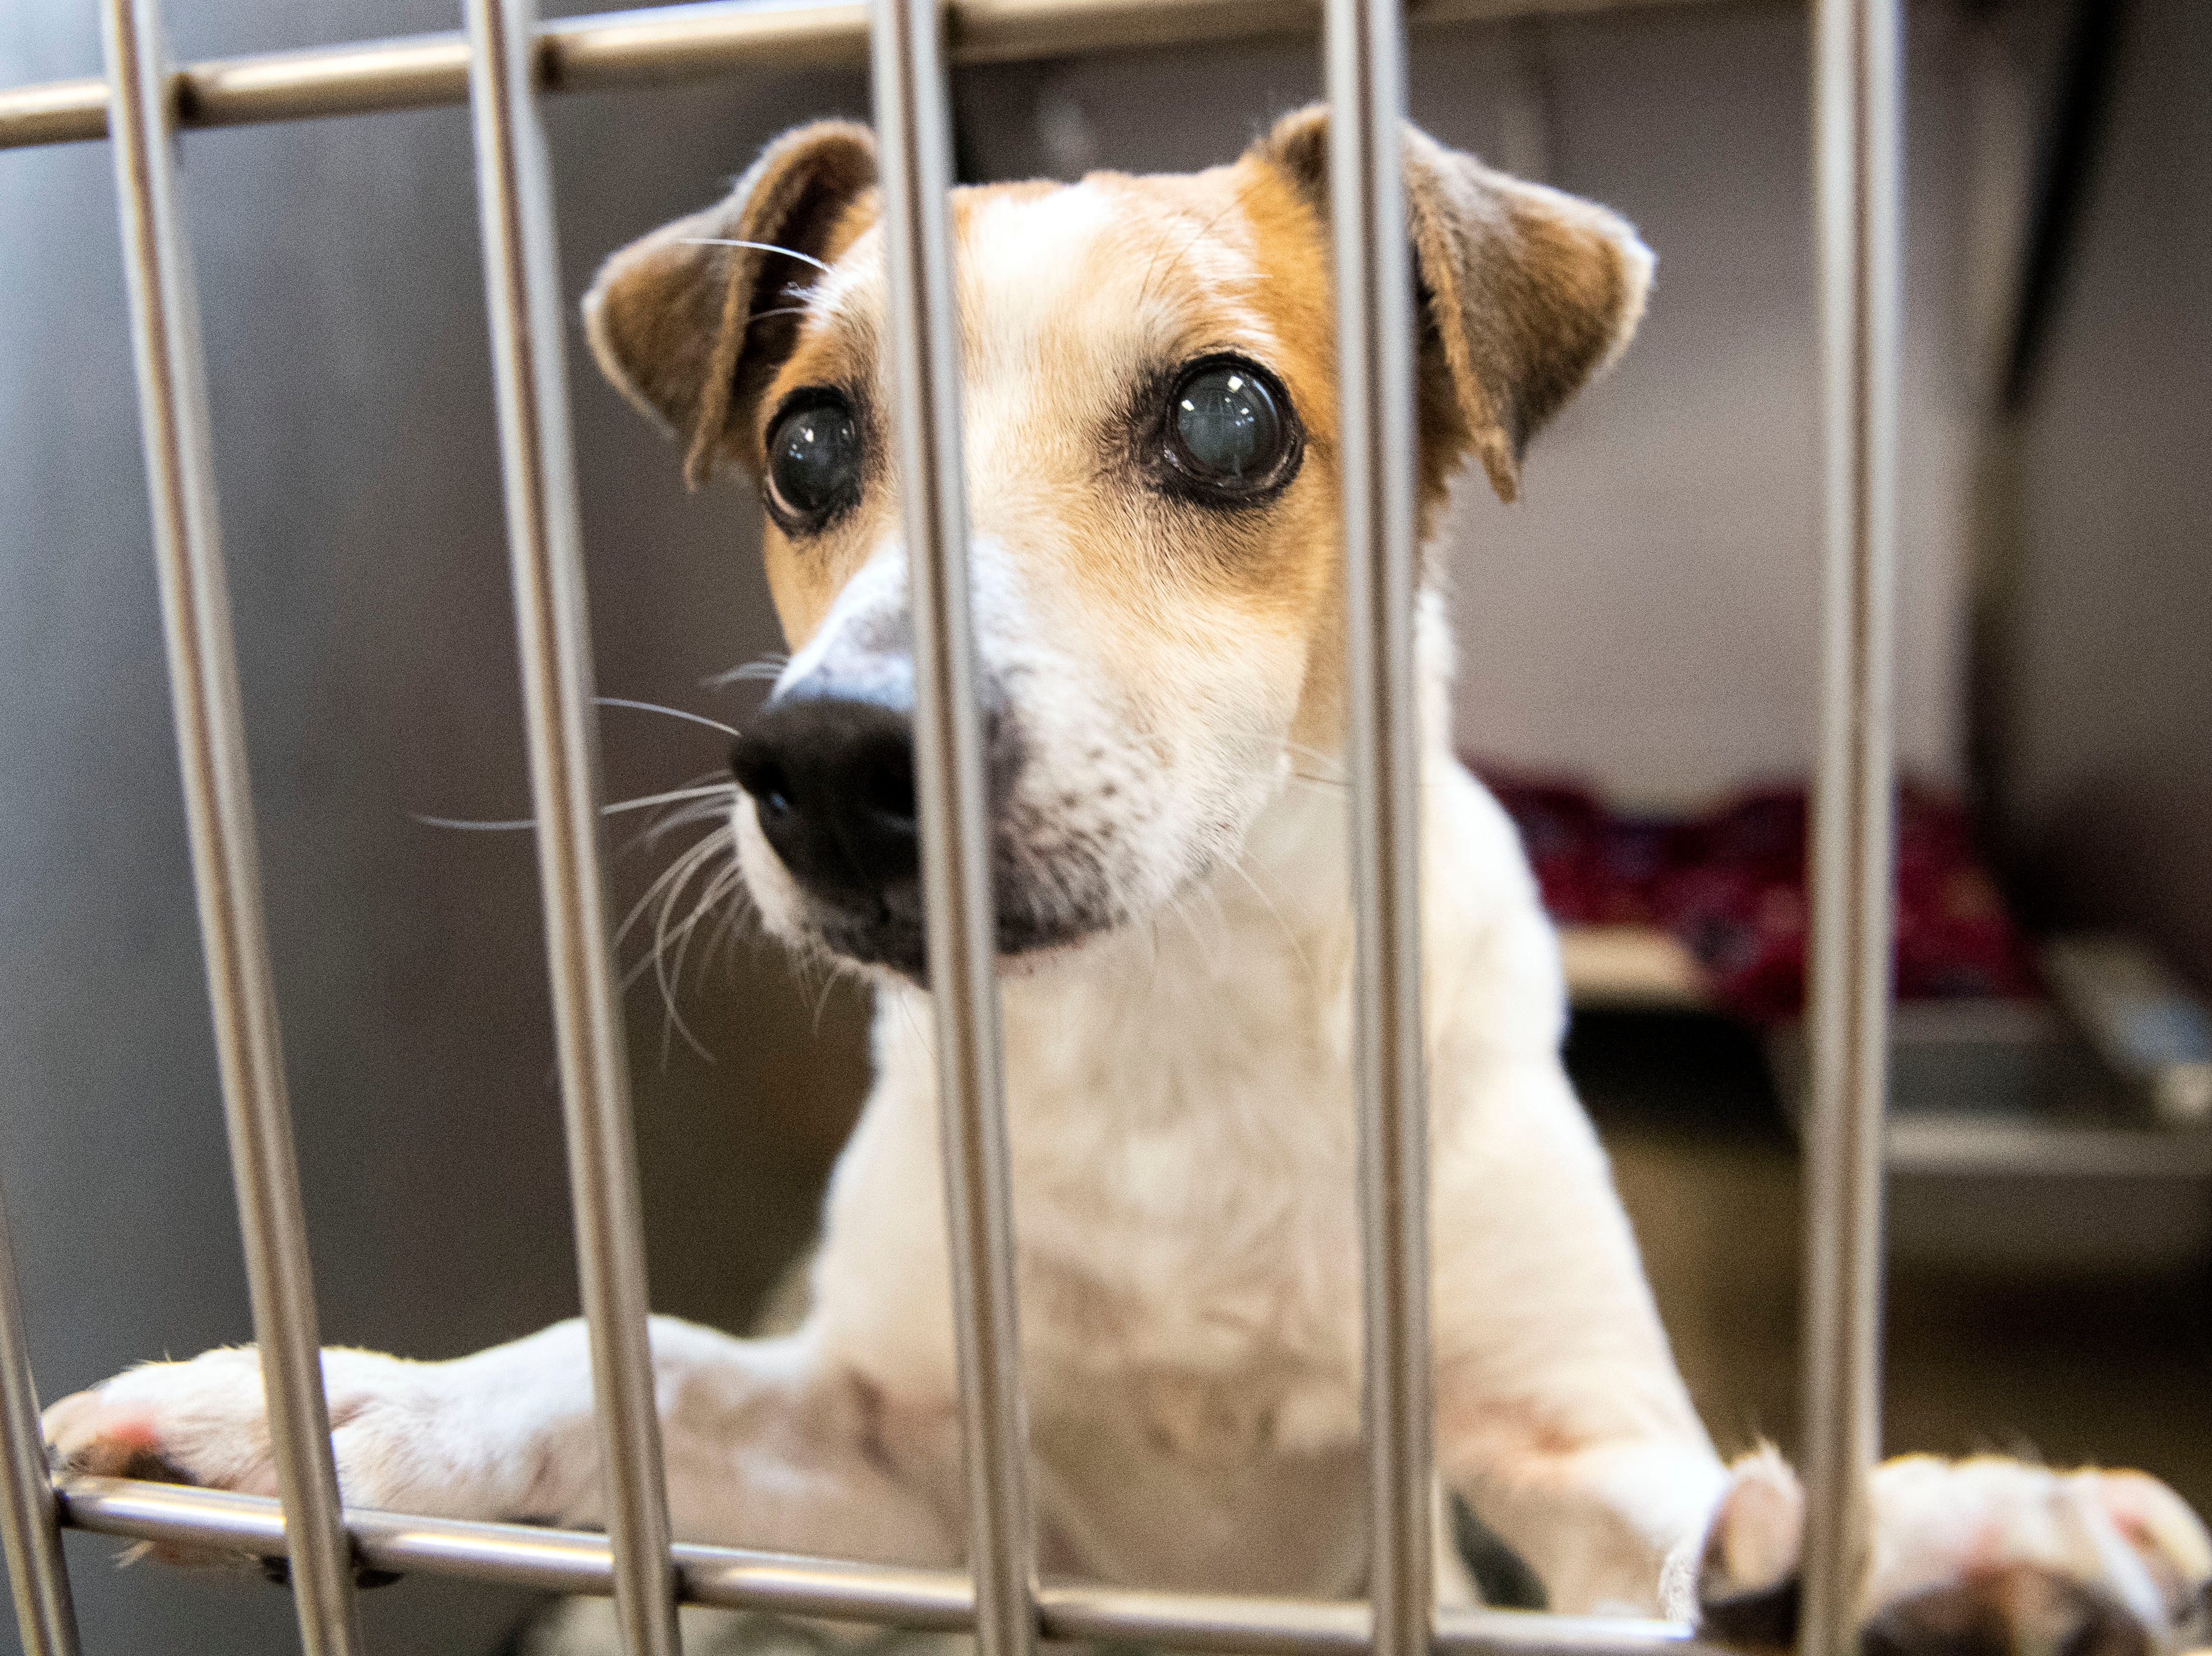 Stevie, a Jack Russell Terrier, under 6 years, at the York County SPCA, Thursday, Feb. 7, 2019. Stevie was found on Pleasant Hill Rd., in Lower Windsor Township. at the York County SPCA, Thursday, Feb. 7, 2019.